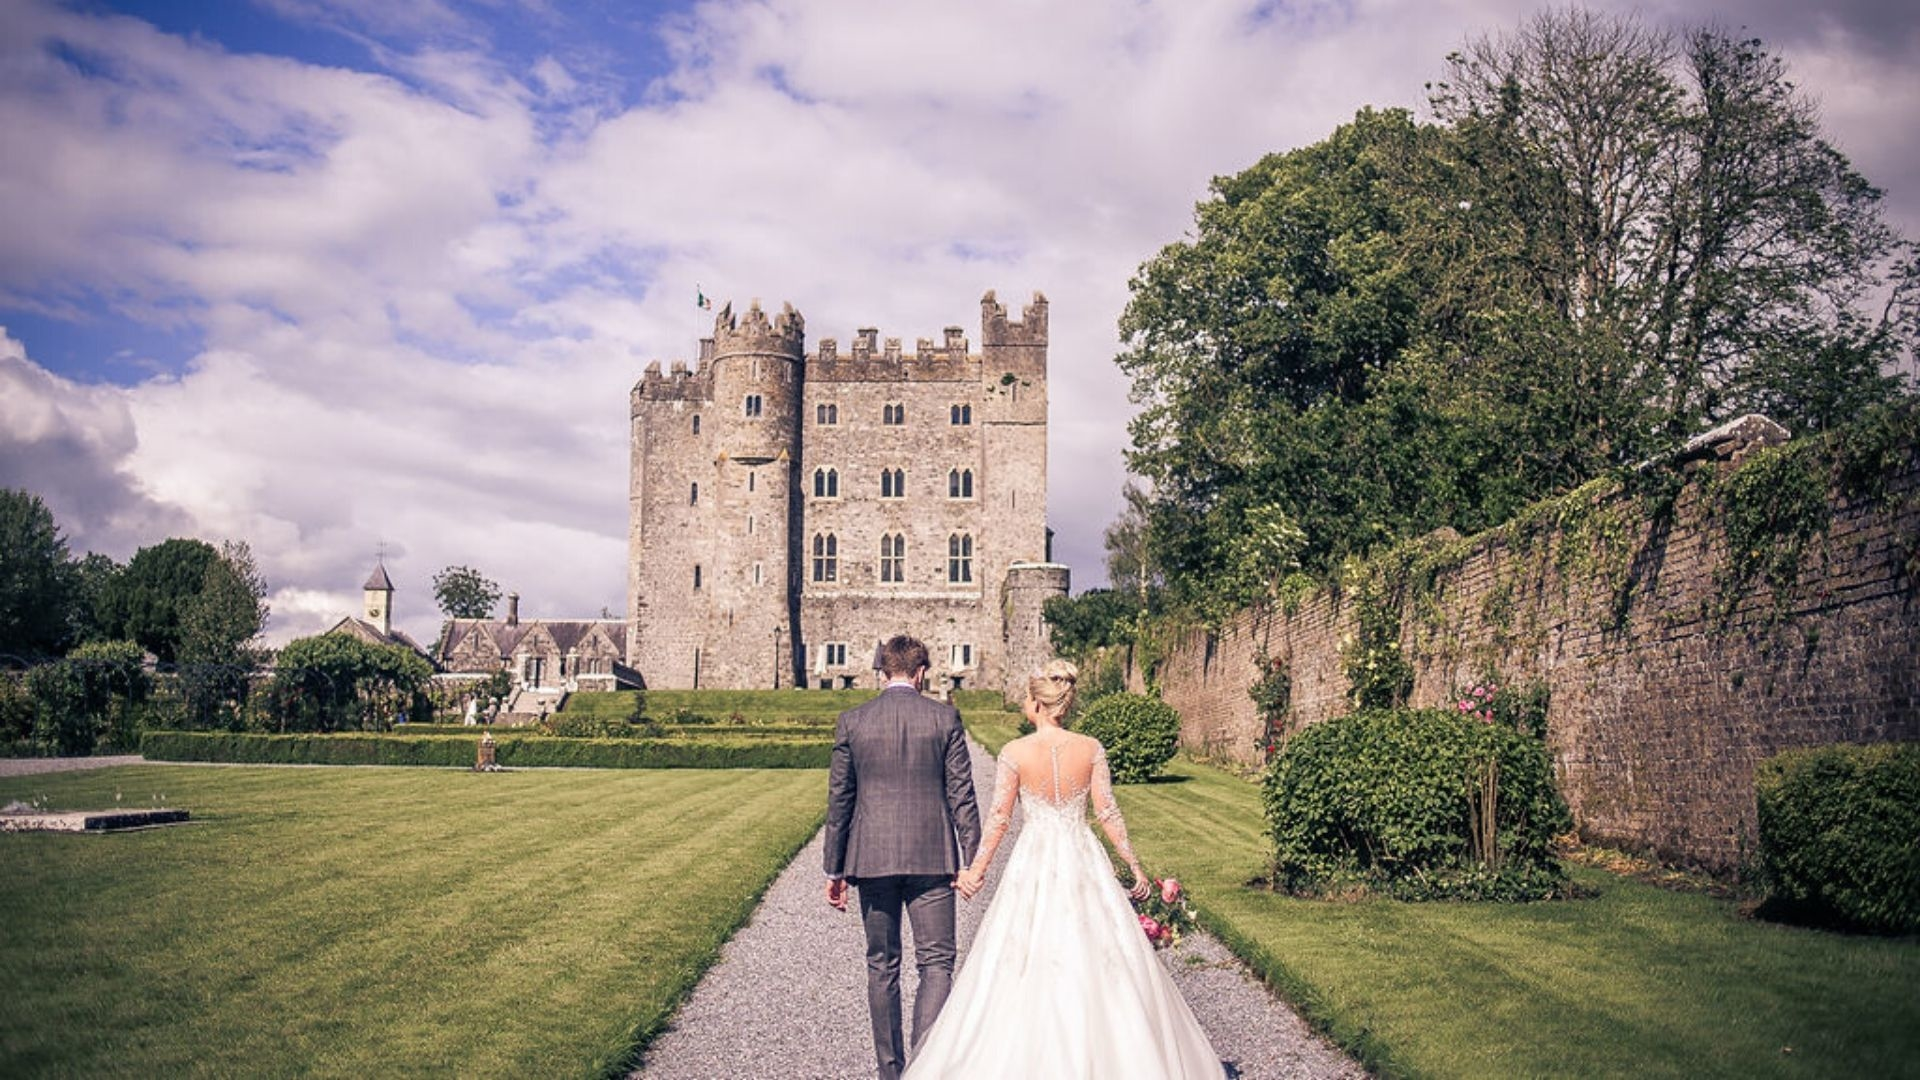 This Is What A Wedding Inside An Irish Castle Looks Like